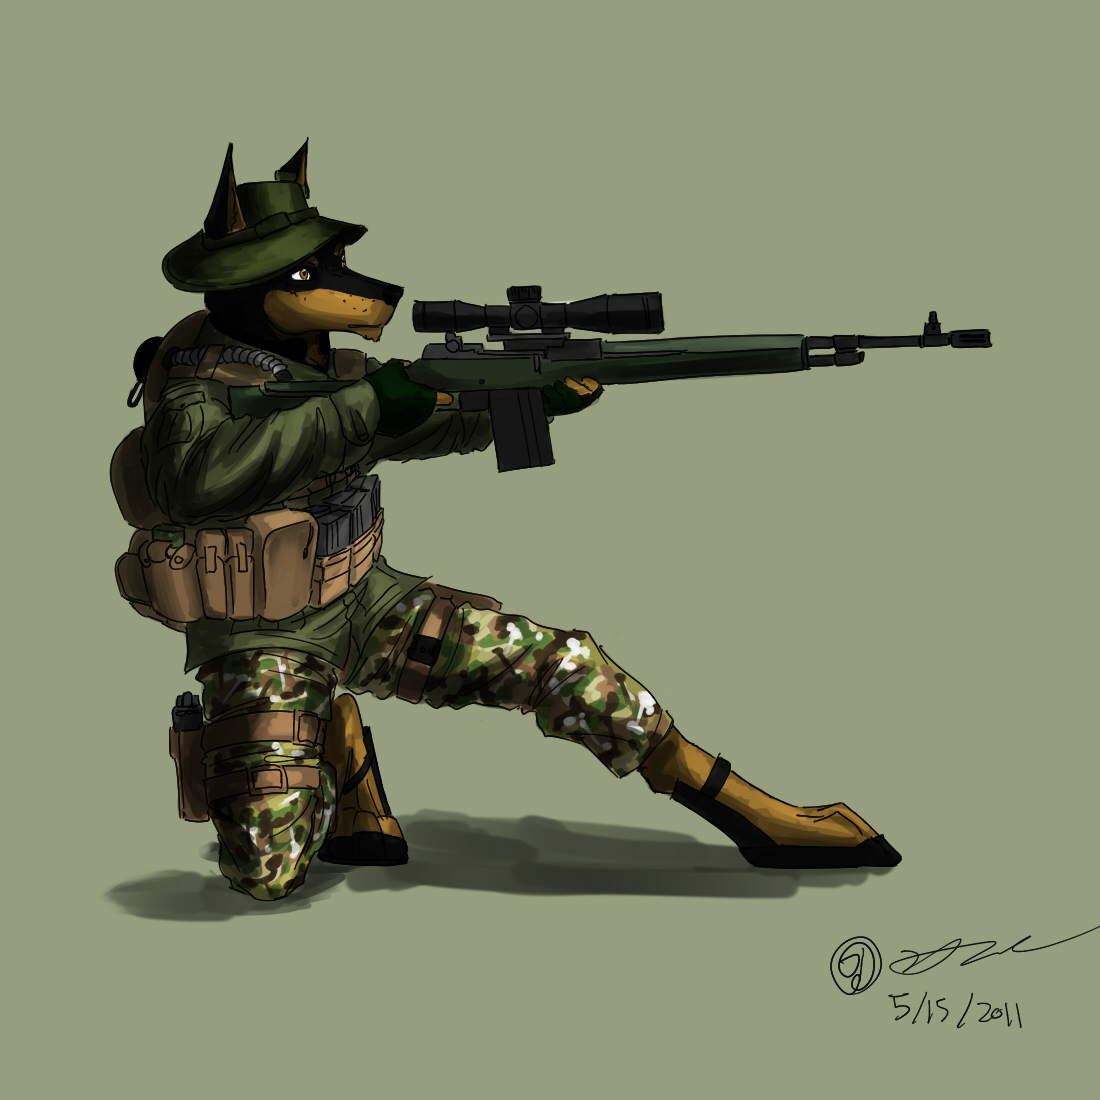 Doberman sniper by kta1540